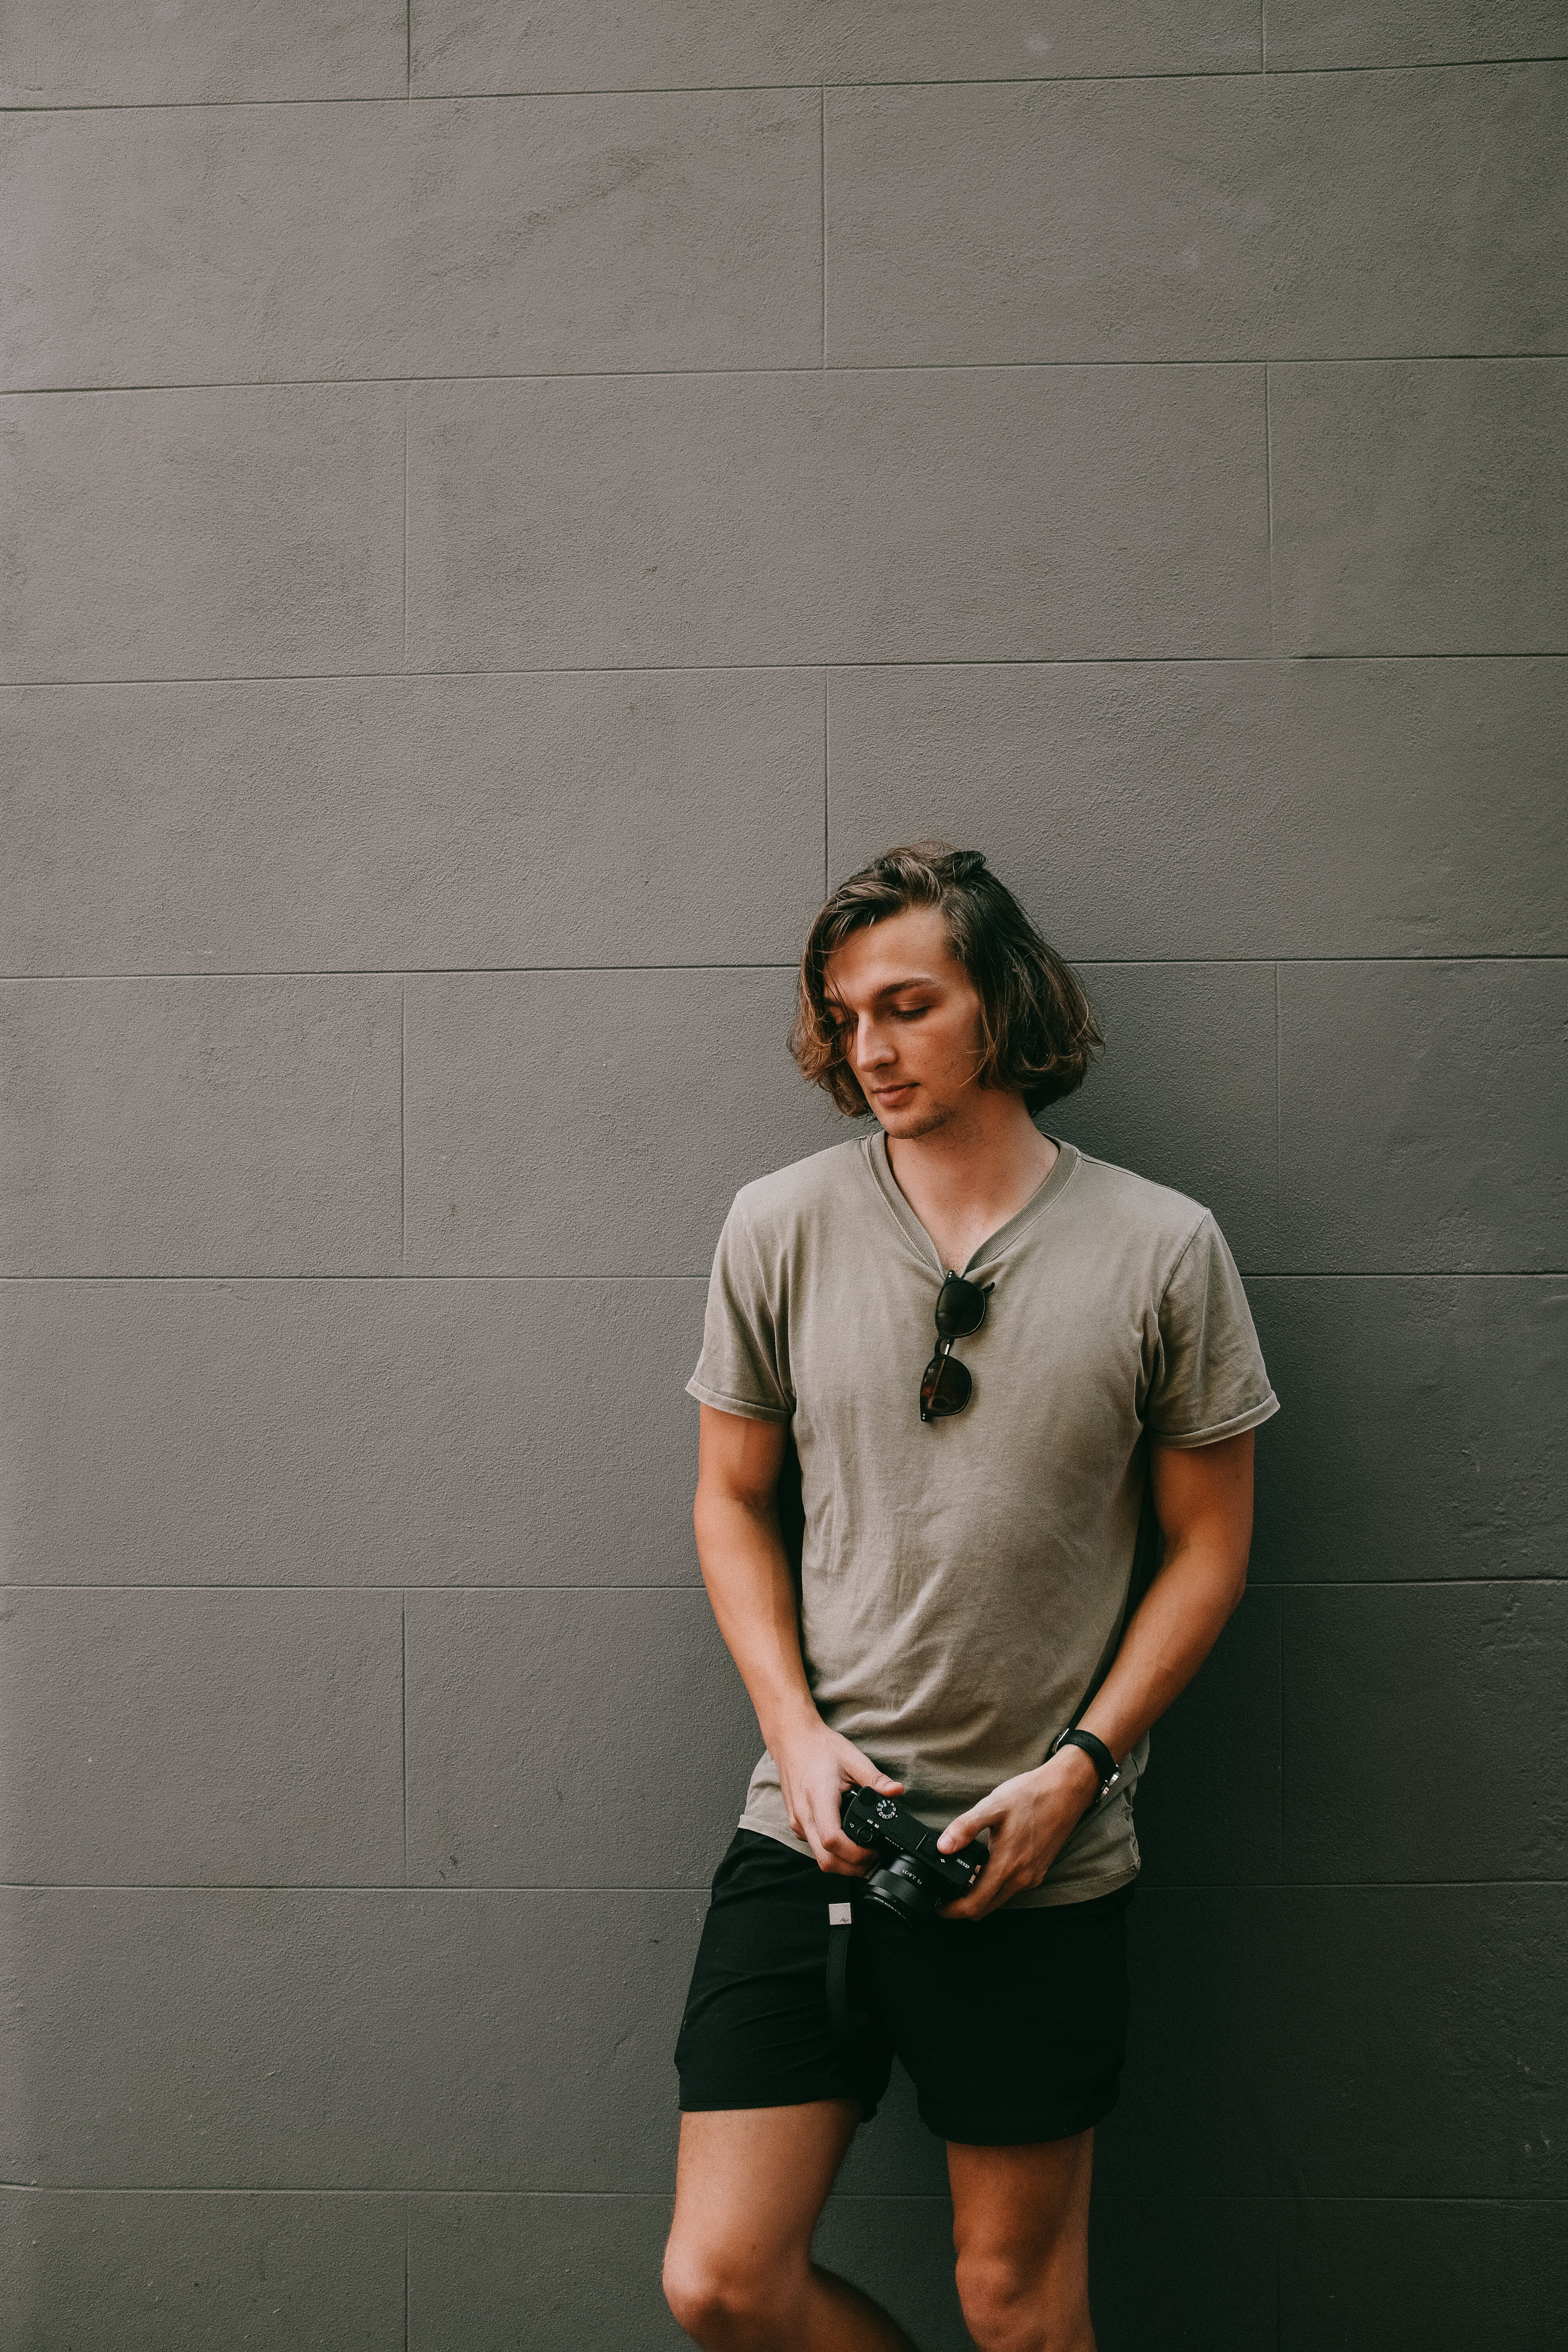 Man in Gray Tee Shirt Holding Camera While Leaning on Wall